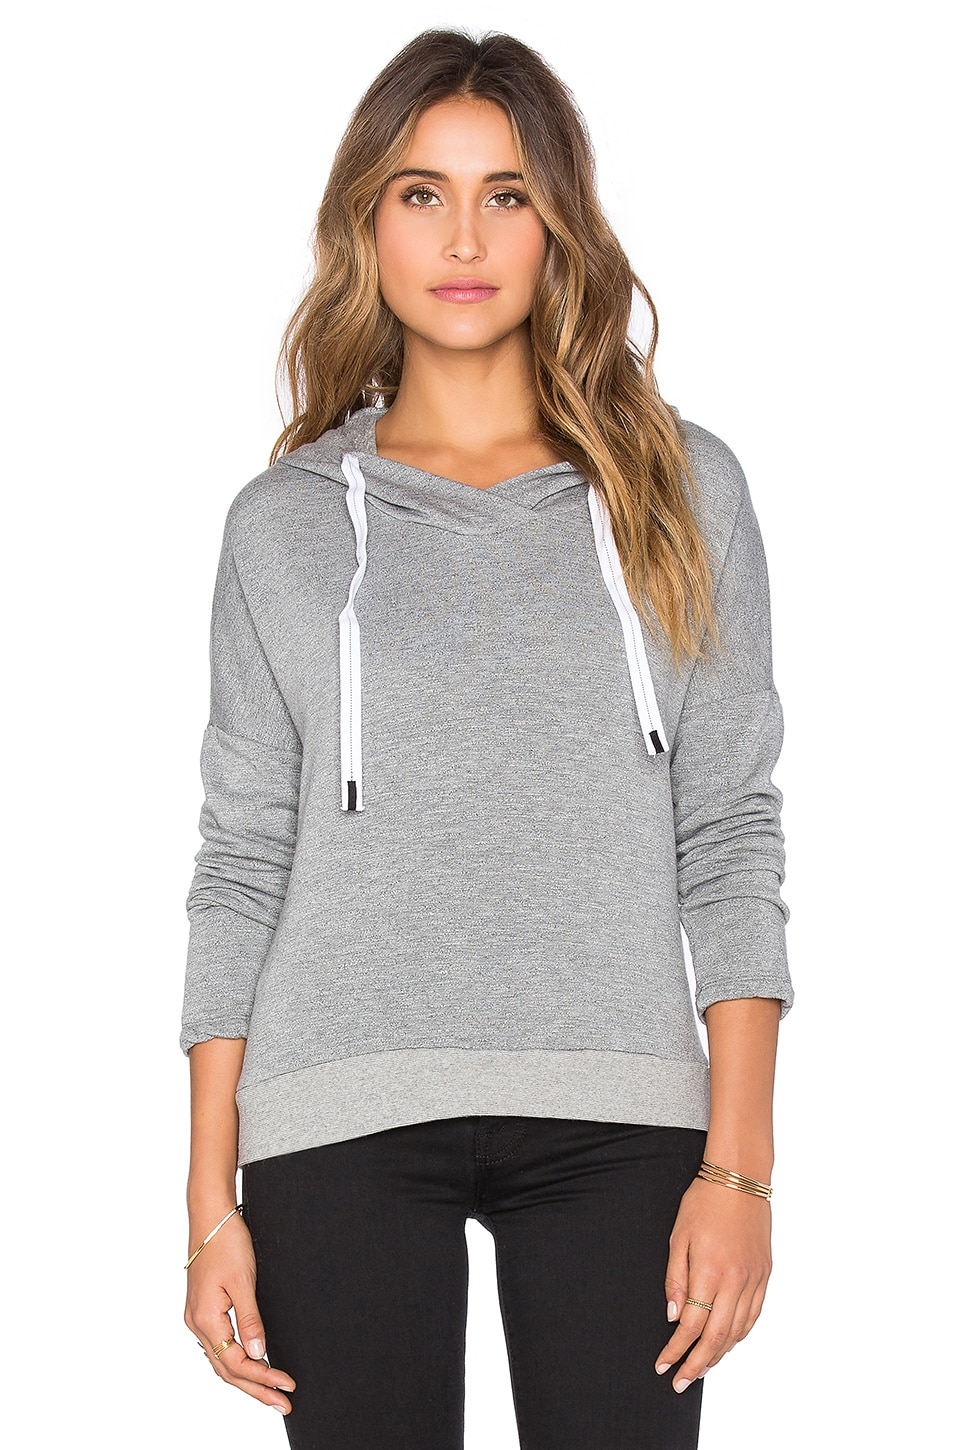 Stateside Fleece Pullover Hoodie in Heather Grey